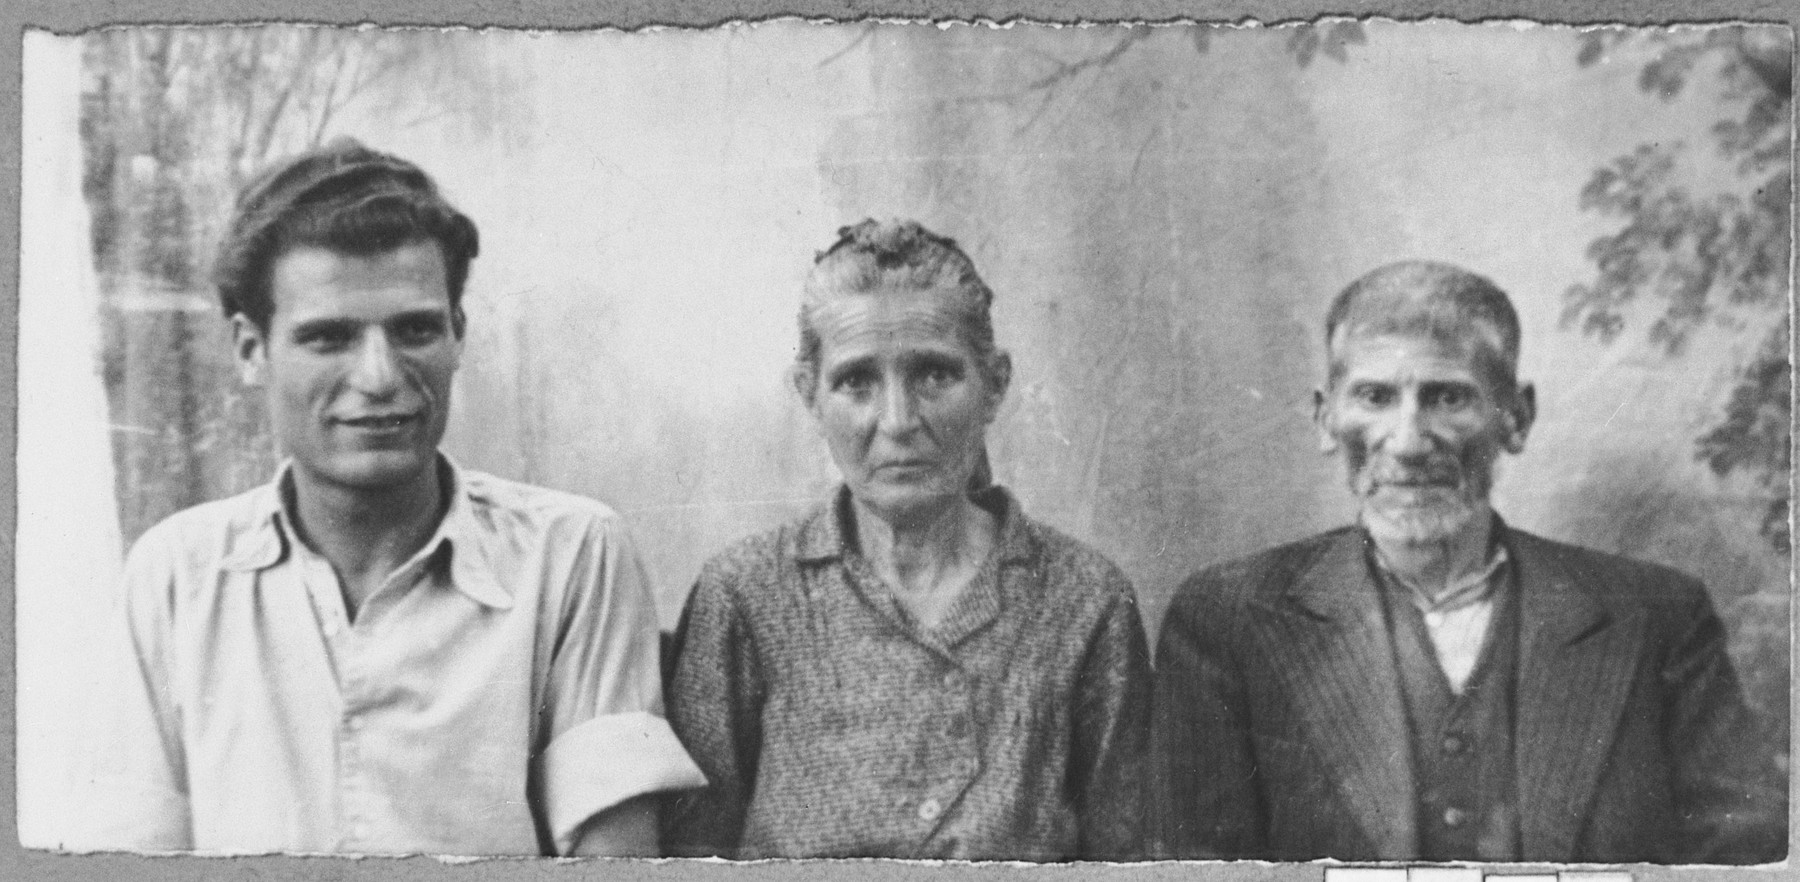 Portrait of Isak (D.) Hasson, his wife, Estrea, and his son, Pepo.  Isak and Pepo were millers.  They lived at Dalmatinska 49 in Bitola.